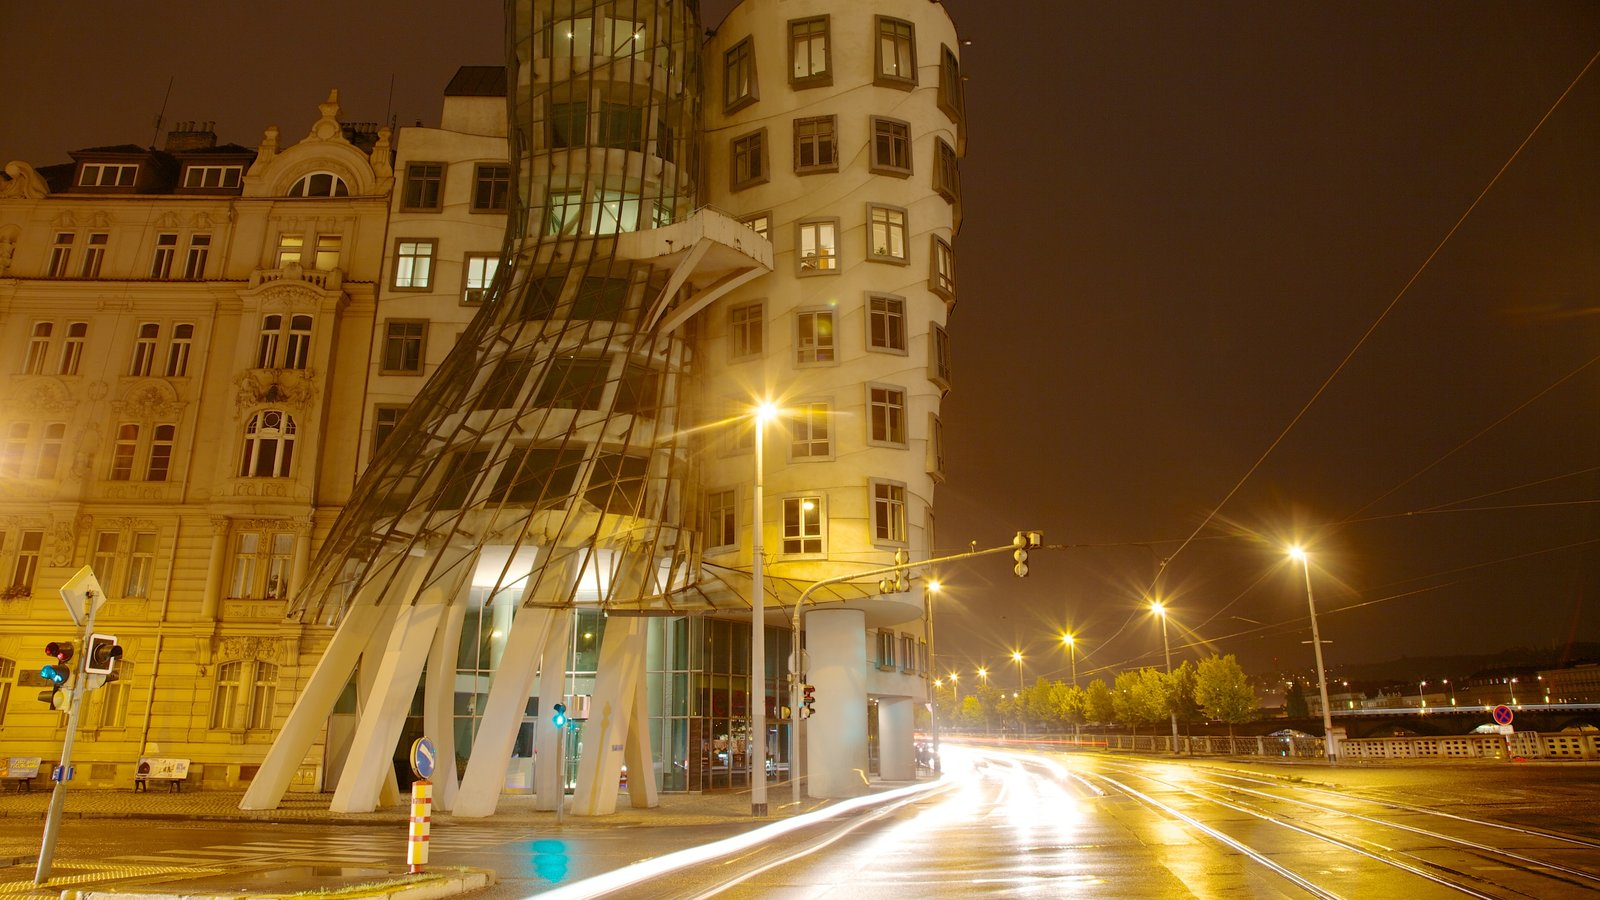 Prague Dancing House showing modern architecture, street scenes and night scenes